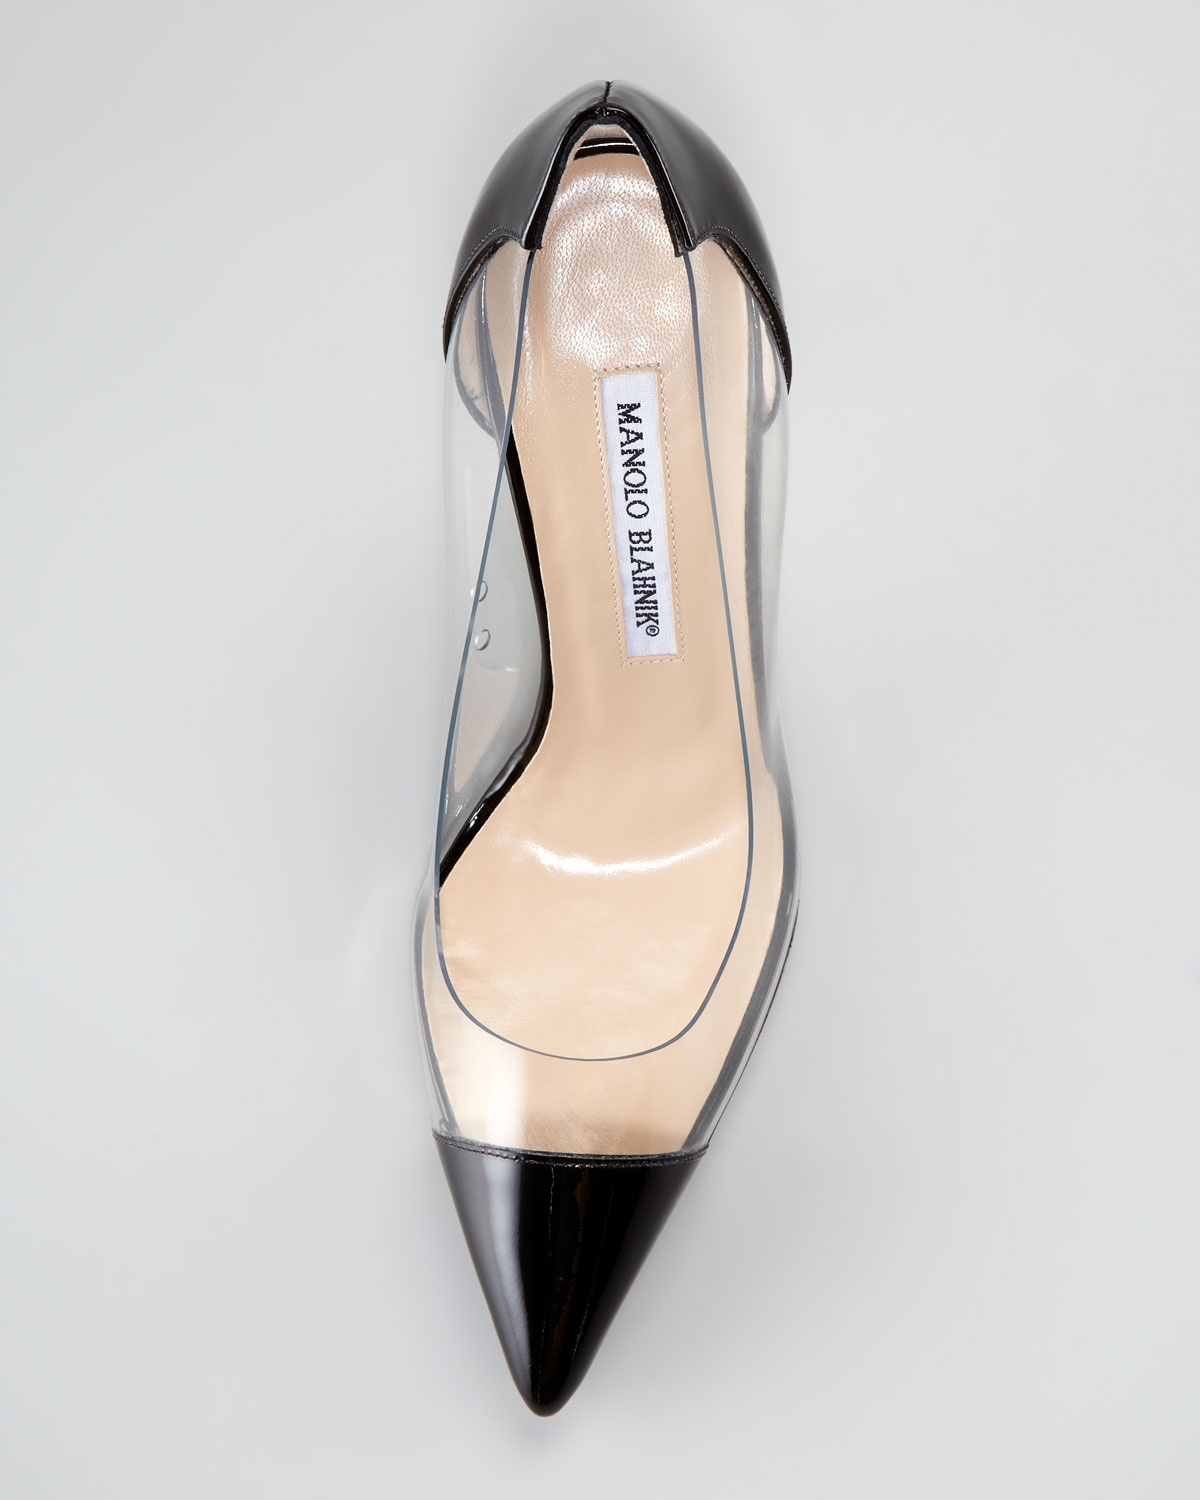 cff94789b65a Lyst - Manolo Blahnik Pacha Clear Pvcpatent Pump in Black